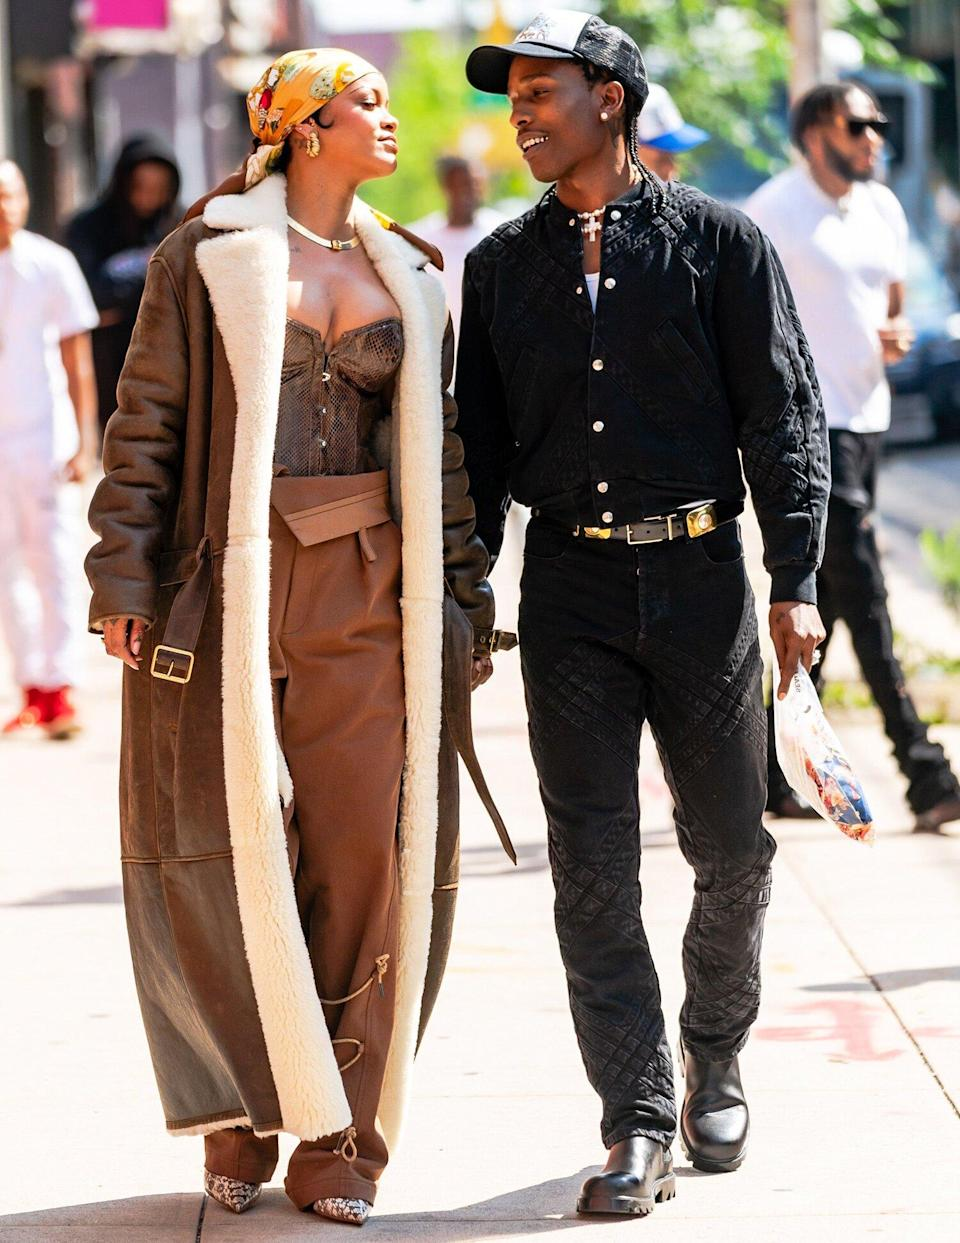 Rihanna and A$AP Rocky are seen filming a music video in the Bronx on July 10, 2021 in New York City.